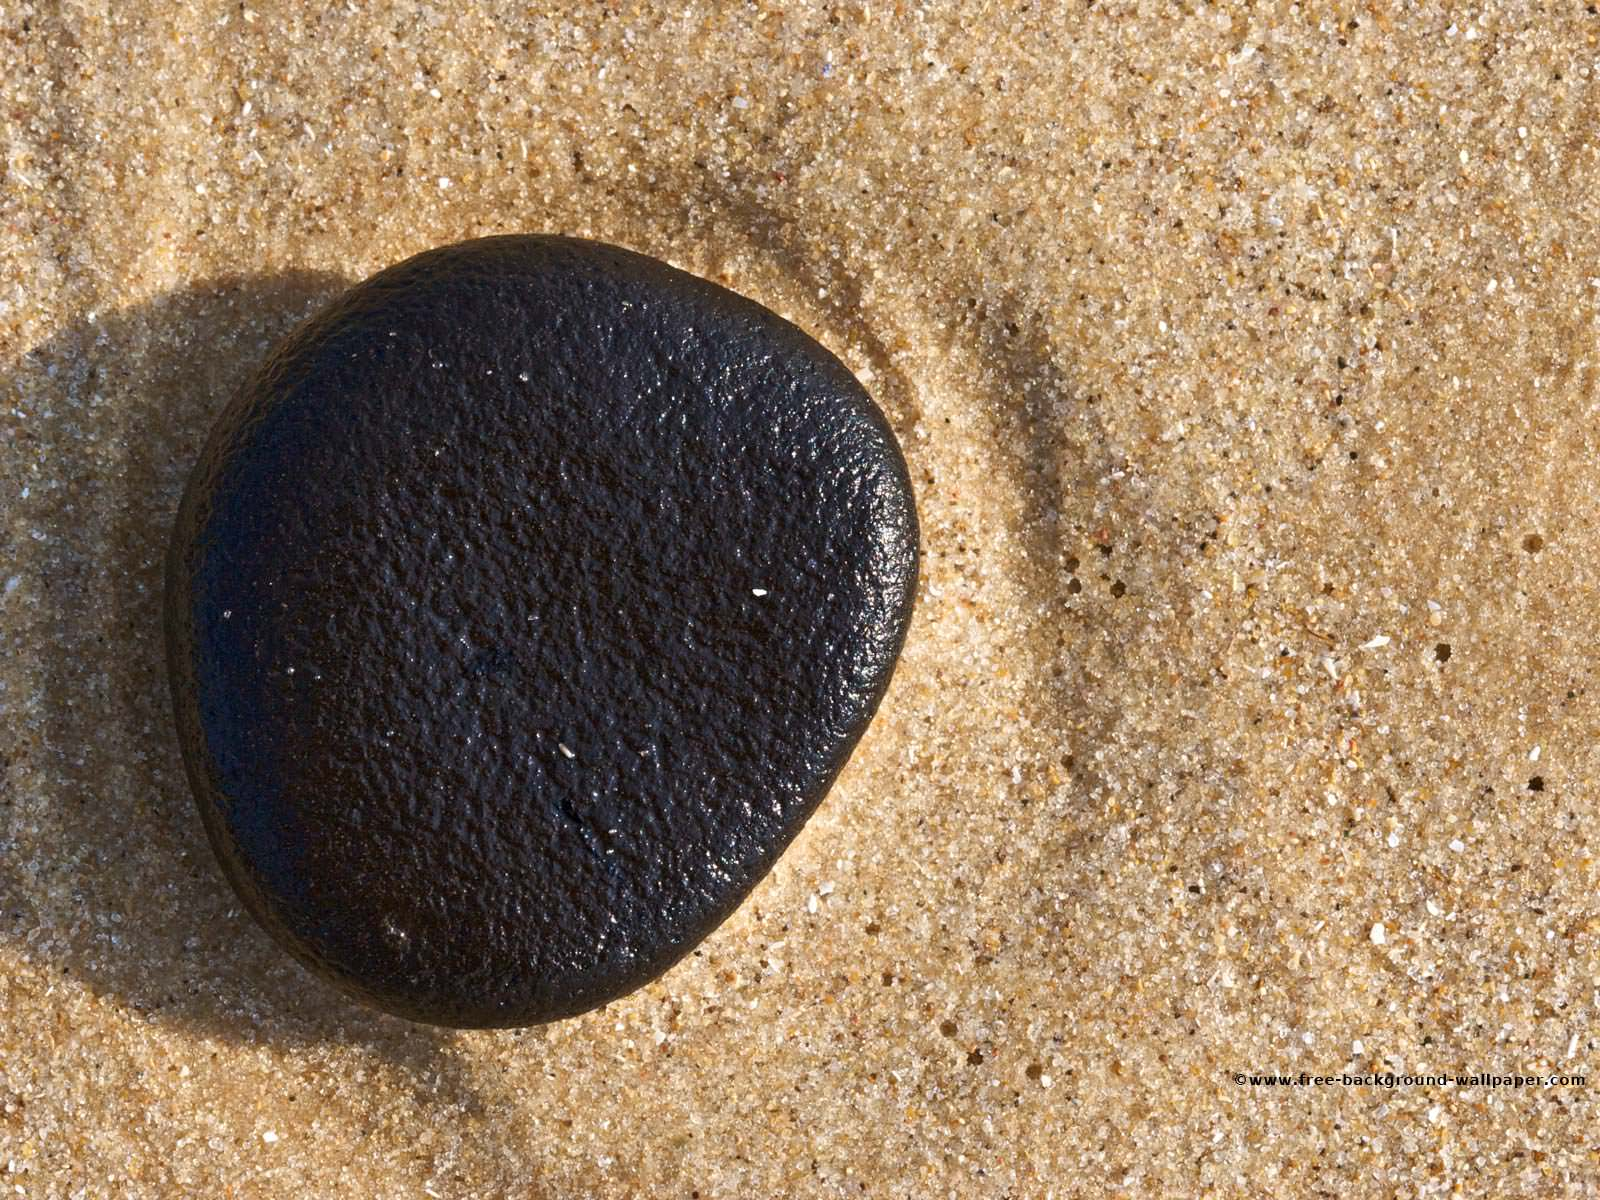 Black Pebble on a Beach Beach Background Wallpaper - 1600x1200 pixels